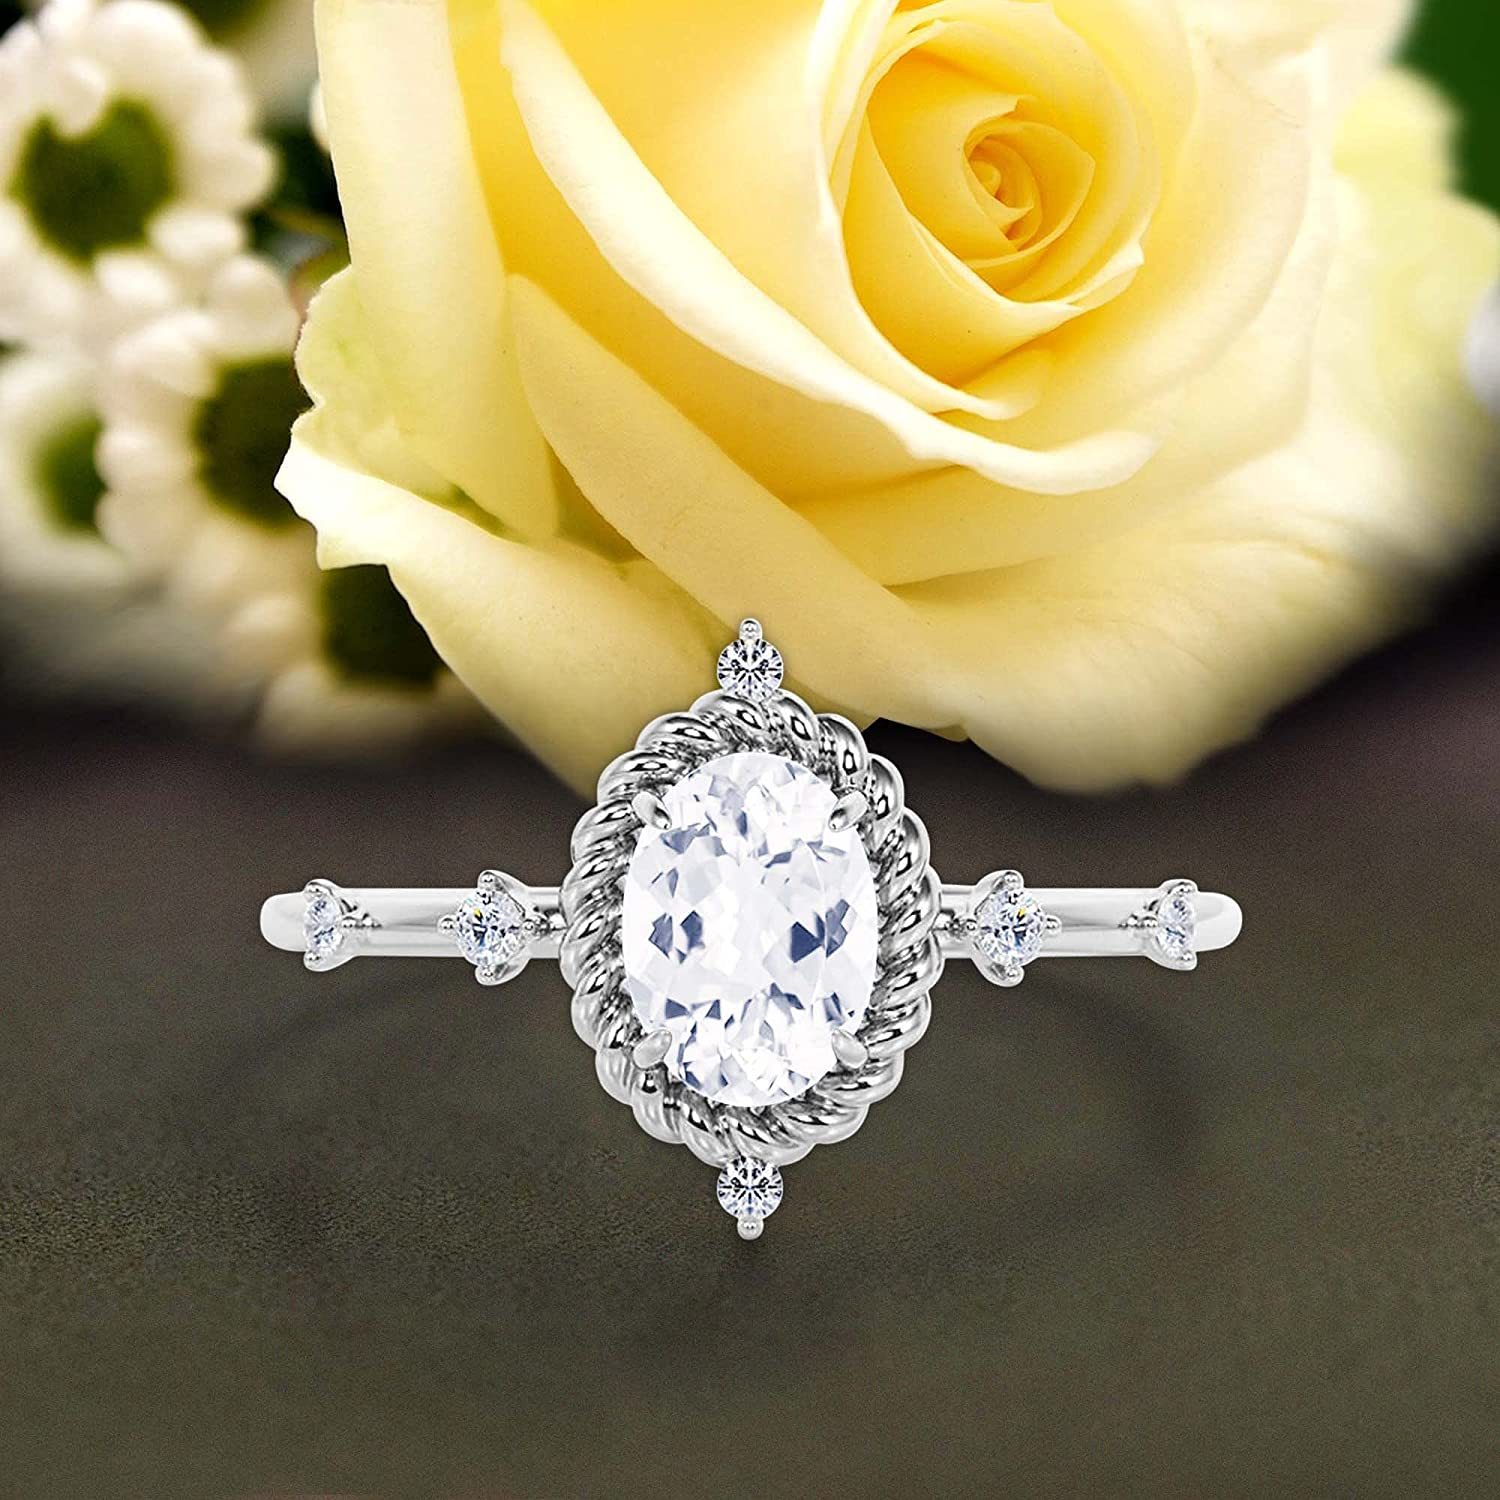 Dazzling Art SEAL limited product nouvea 1.50 Carat Diamond Cut Oval Engag Moissanite Max 90% OFF